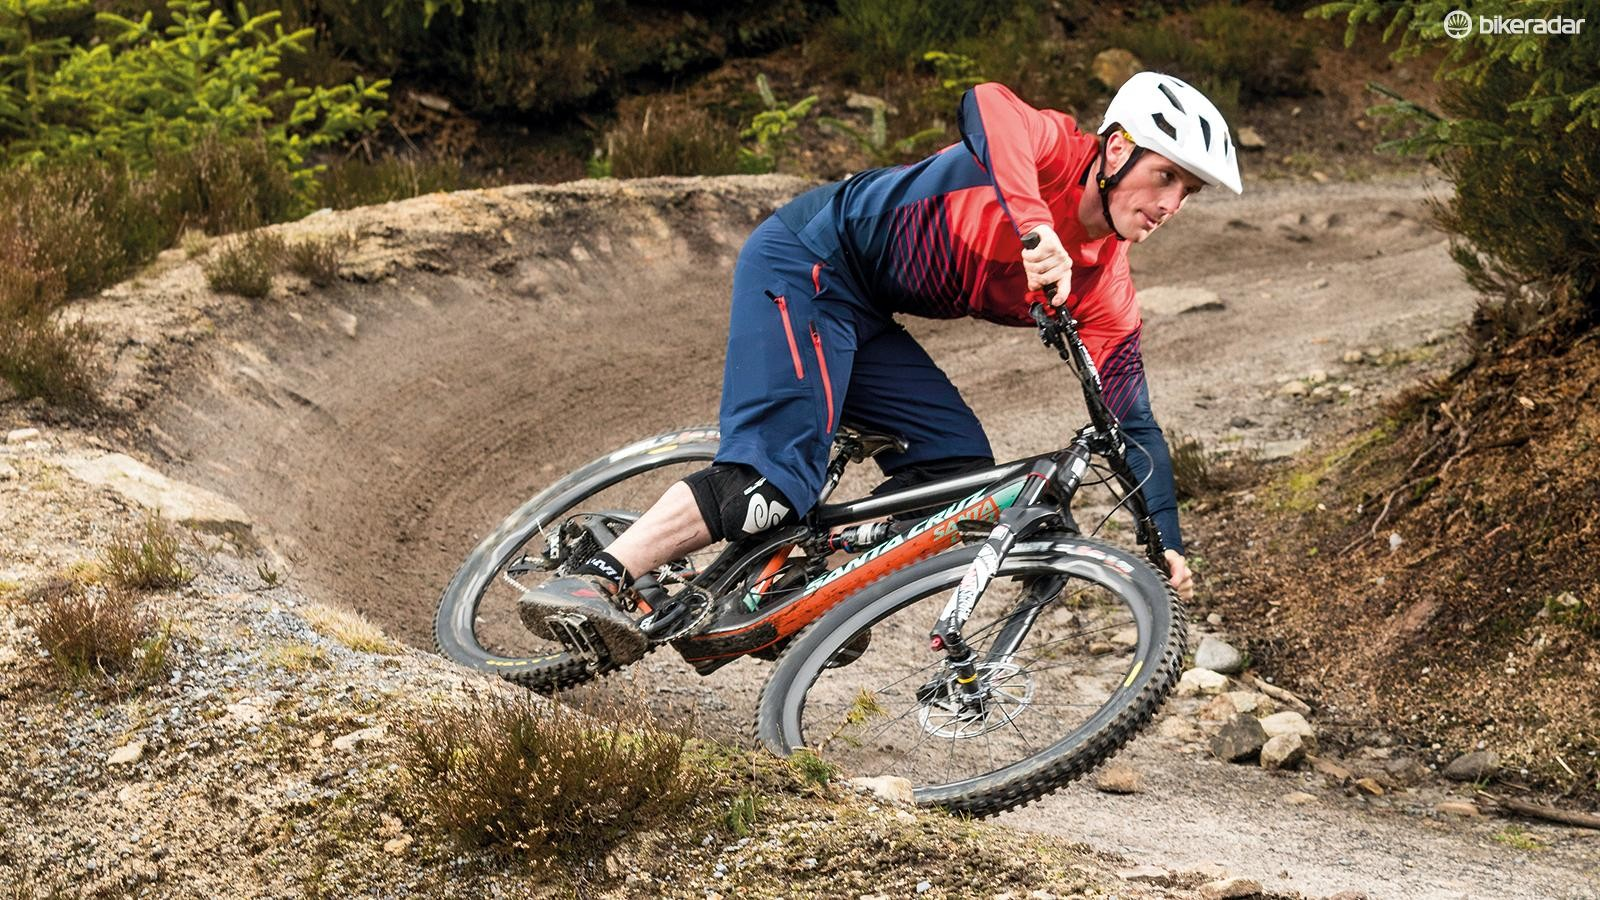 If a berm is fast and tight, it's better to carve it than to try and rail it